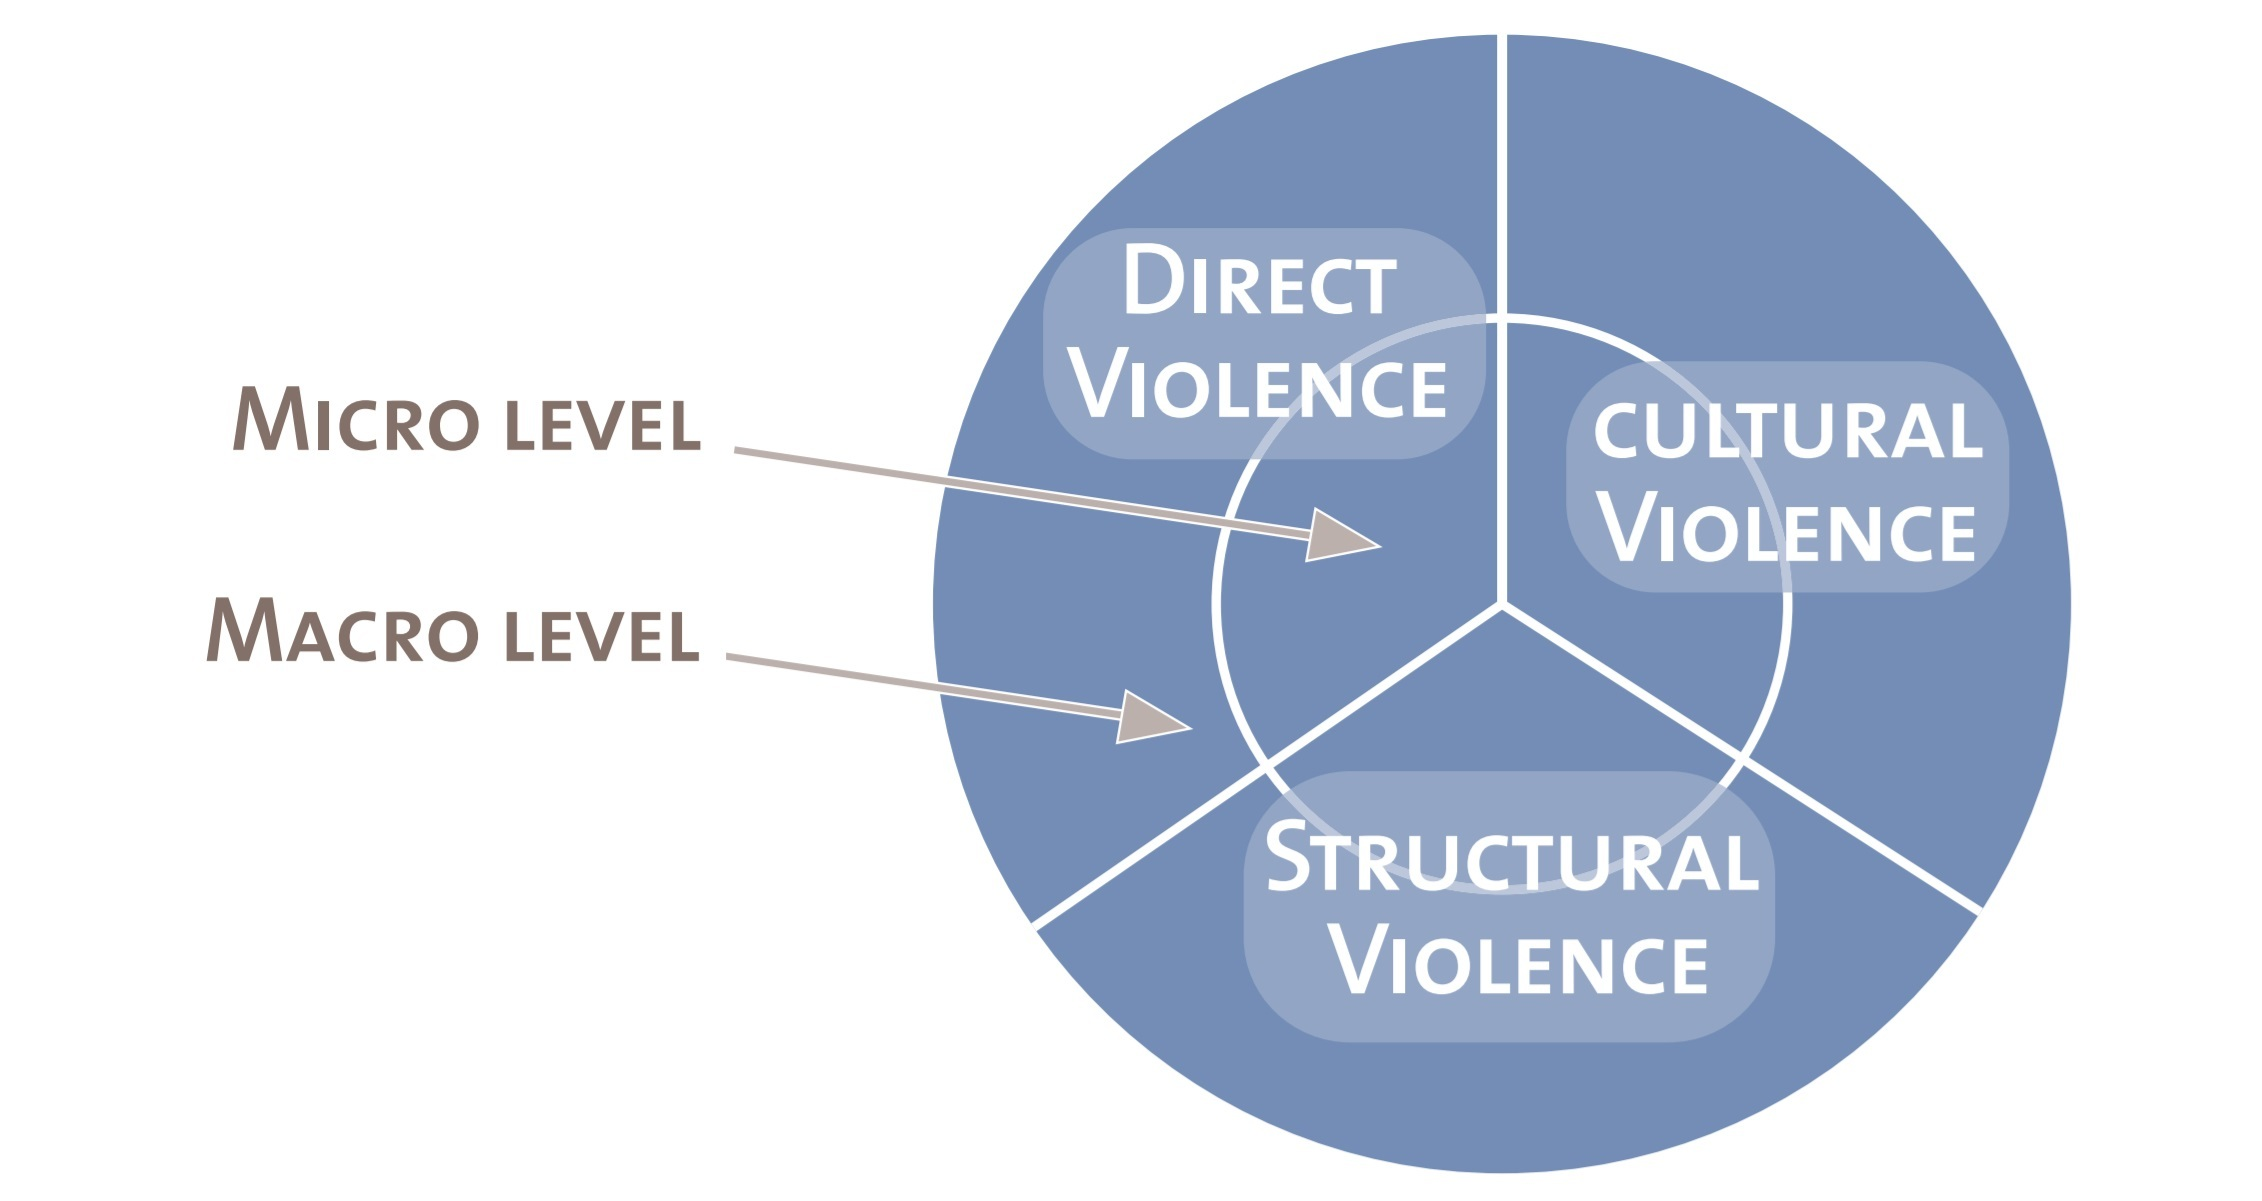 Model of direct, structural and cultural violence on micro and macro level